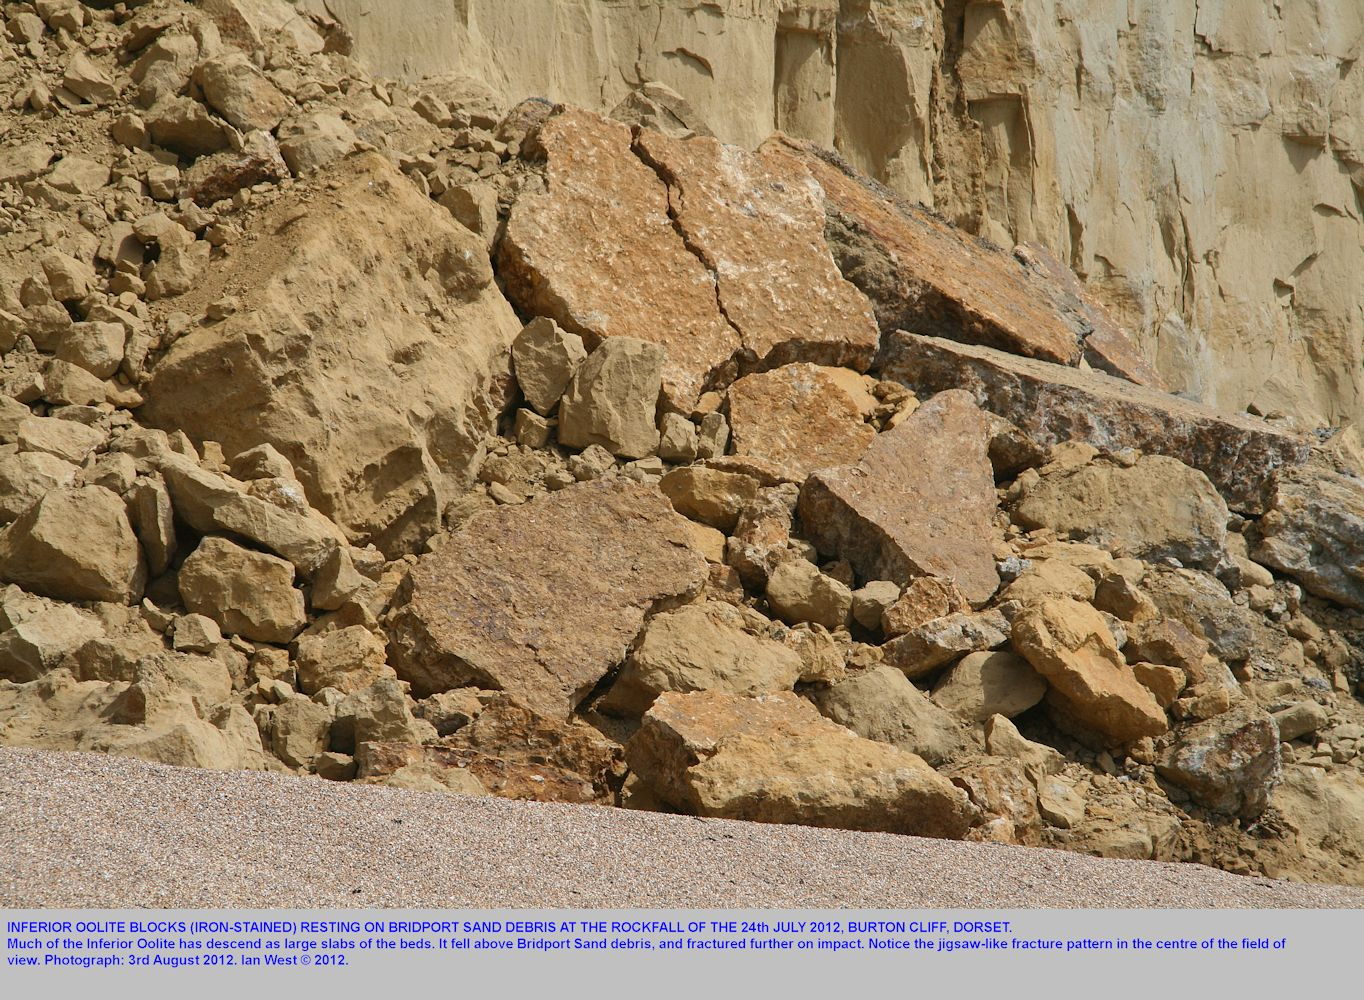 Blocks of Inferior Oolite, fractured in jigsaw-like manner at impact on Bridport Sand debris, Burton cliff, Burton Bradstock, Dorset, photo 3rd August 2012